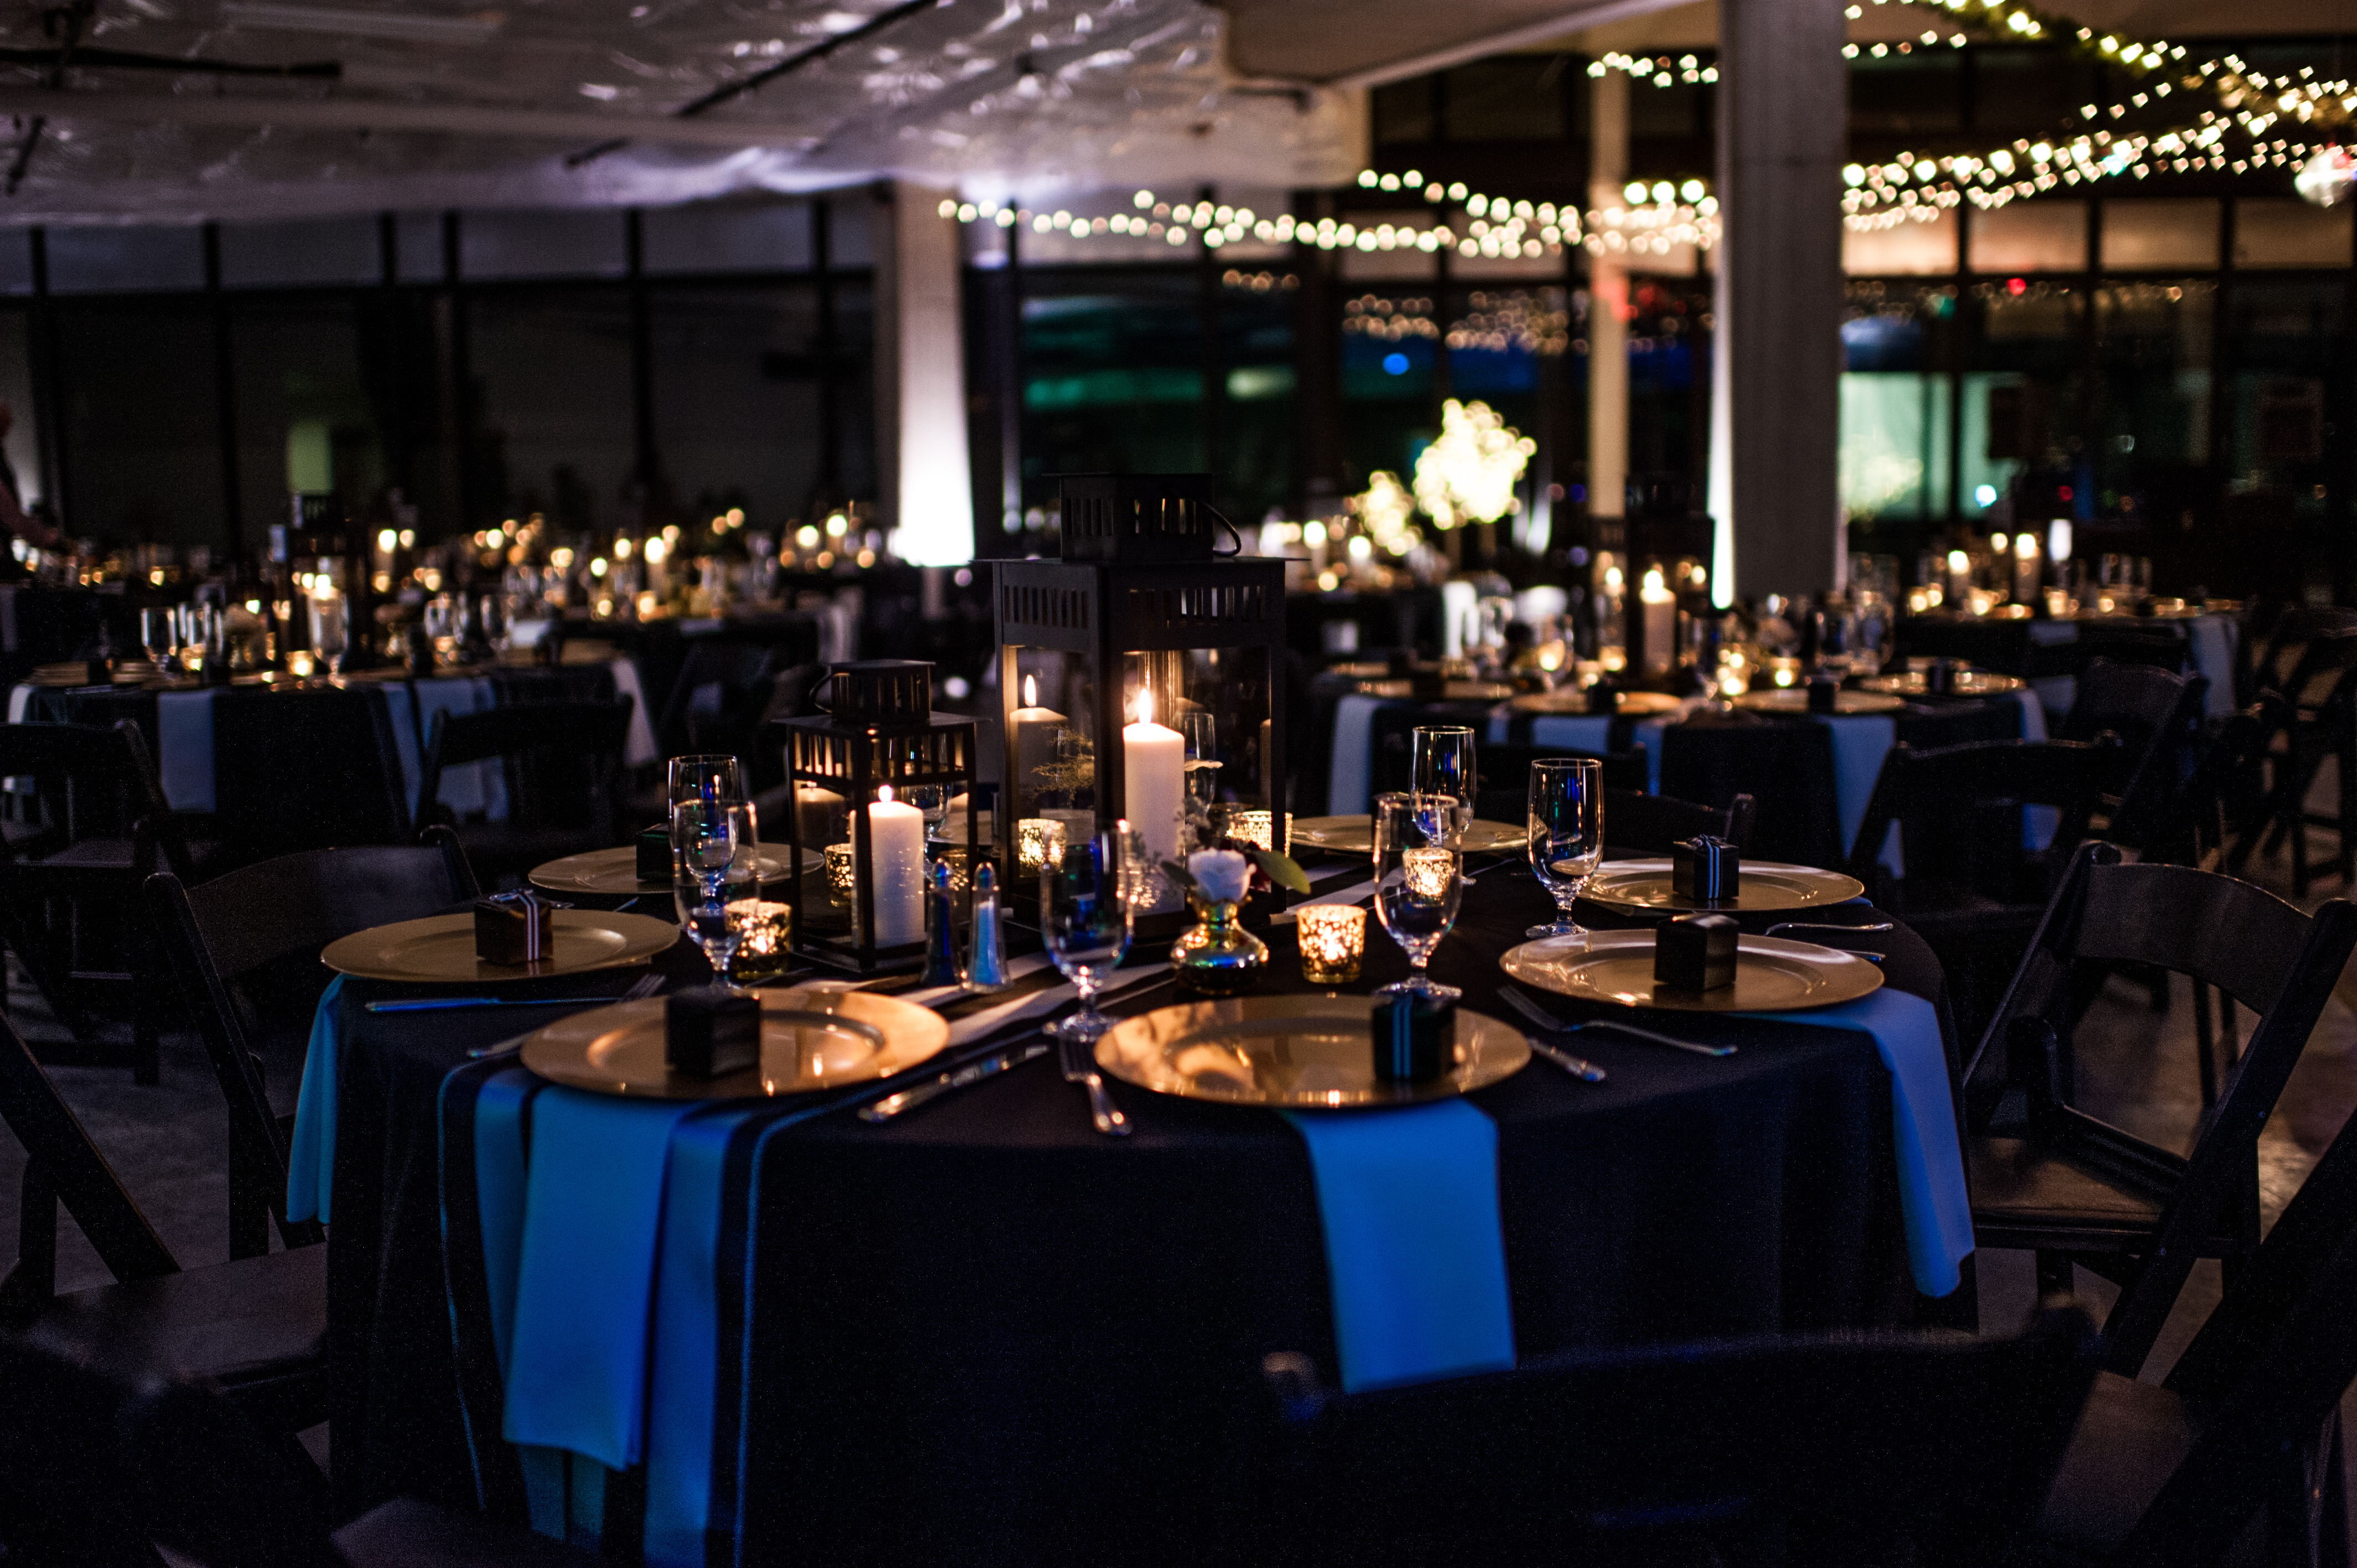 American Life, Inc. & SODO Builders, LLC Corporate Holiday Party 2016 - Candice Luth Wedding & Event Design